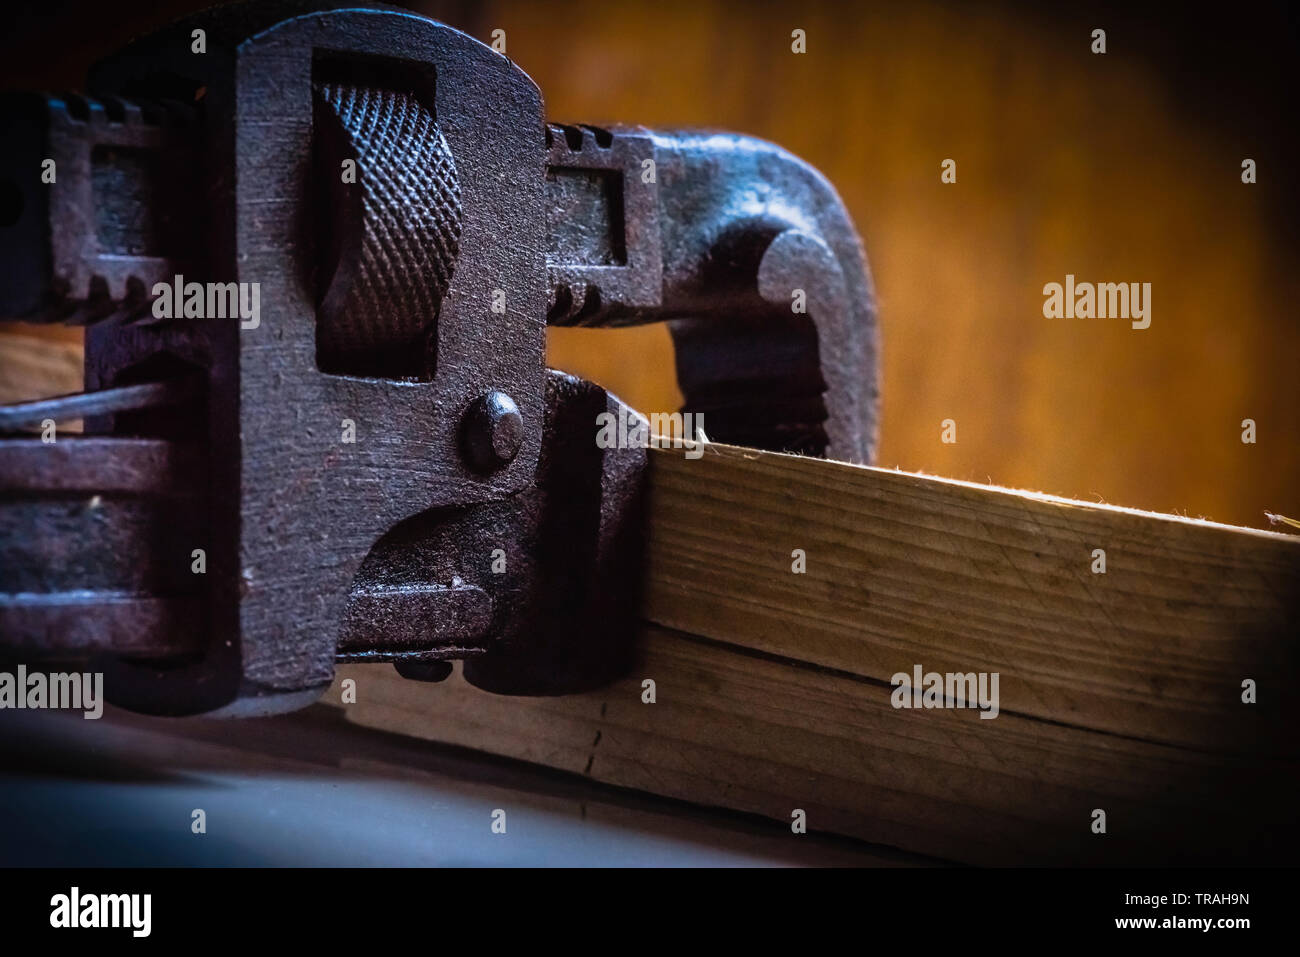 Rusted, stained pipe wrench hand tool clamped with a wooden block - Stock Image